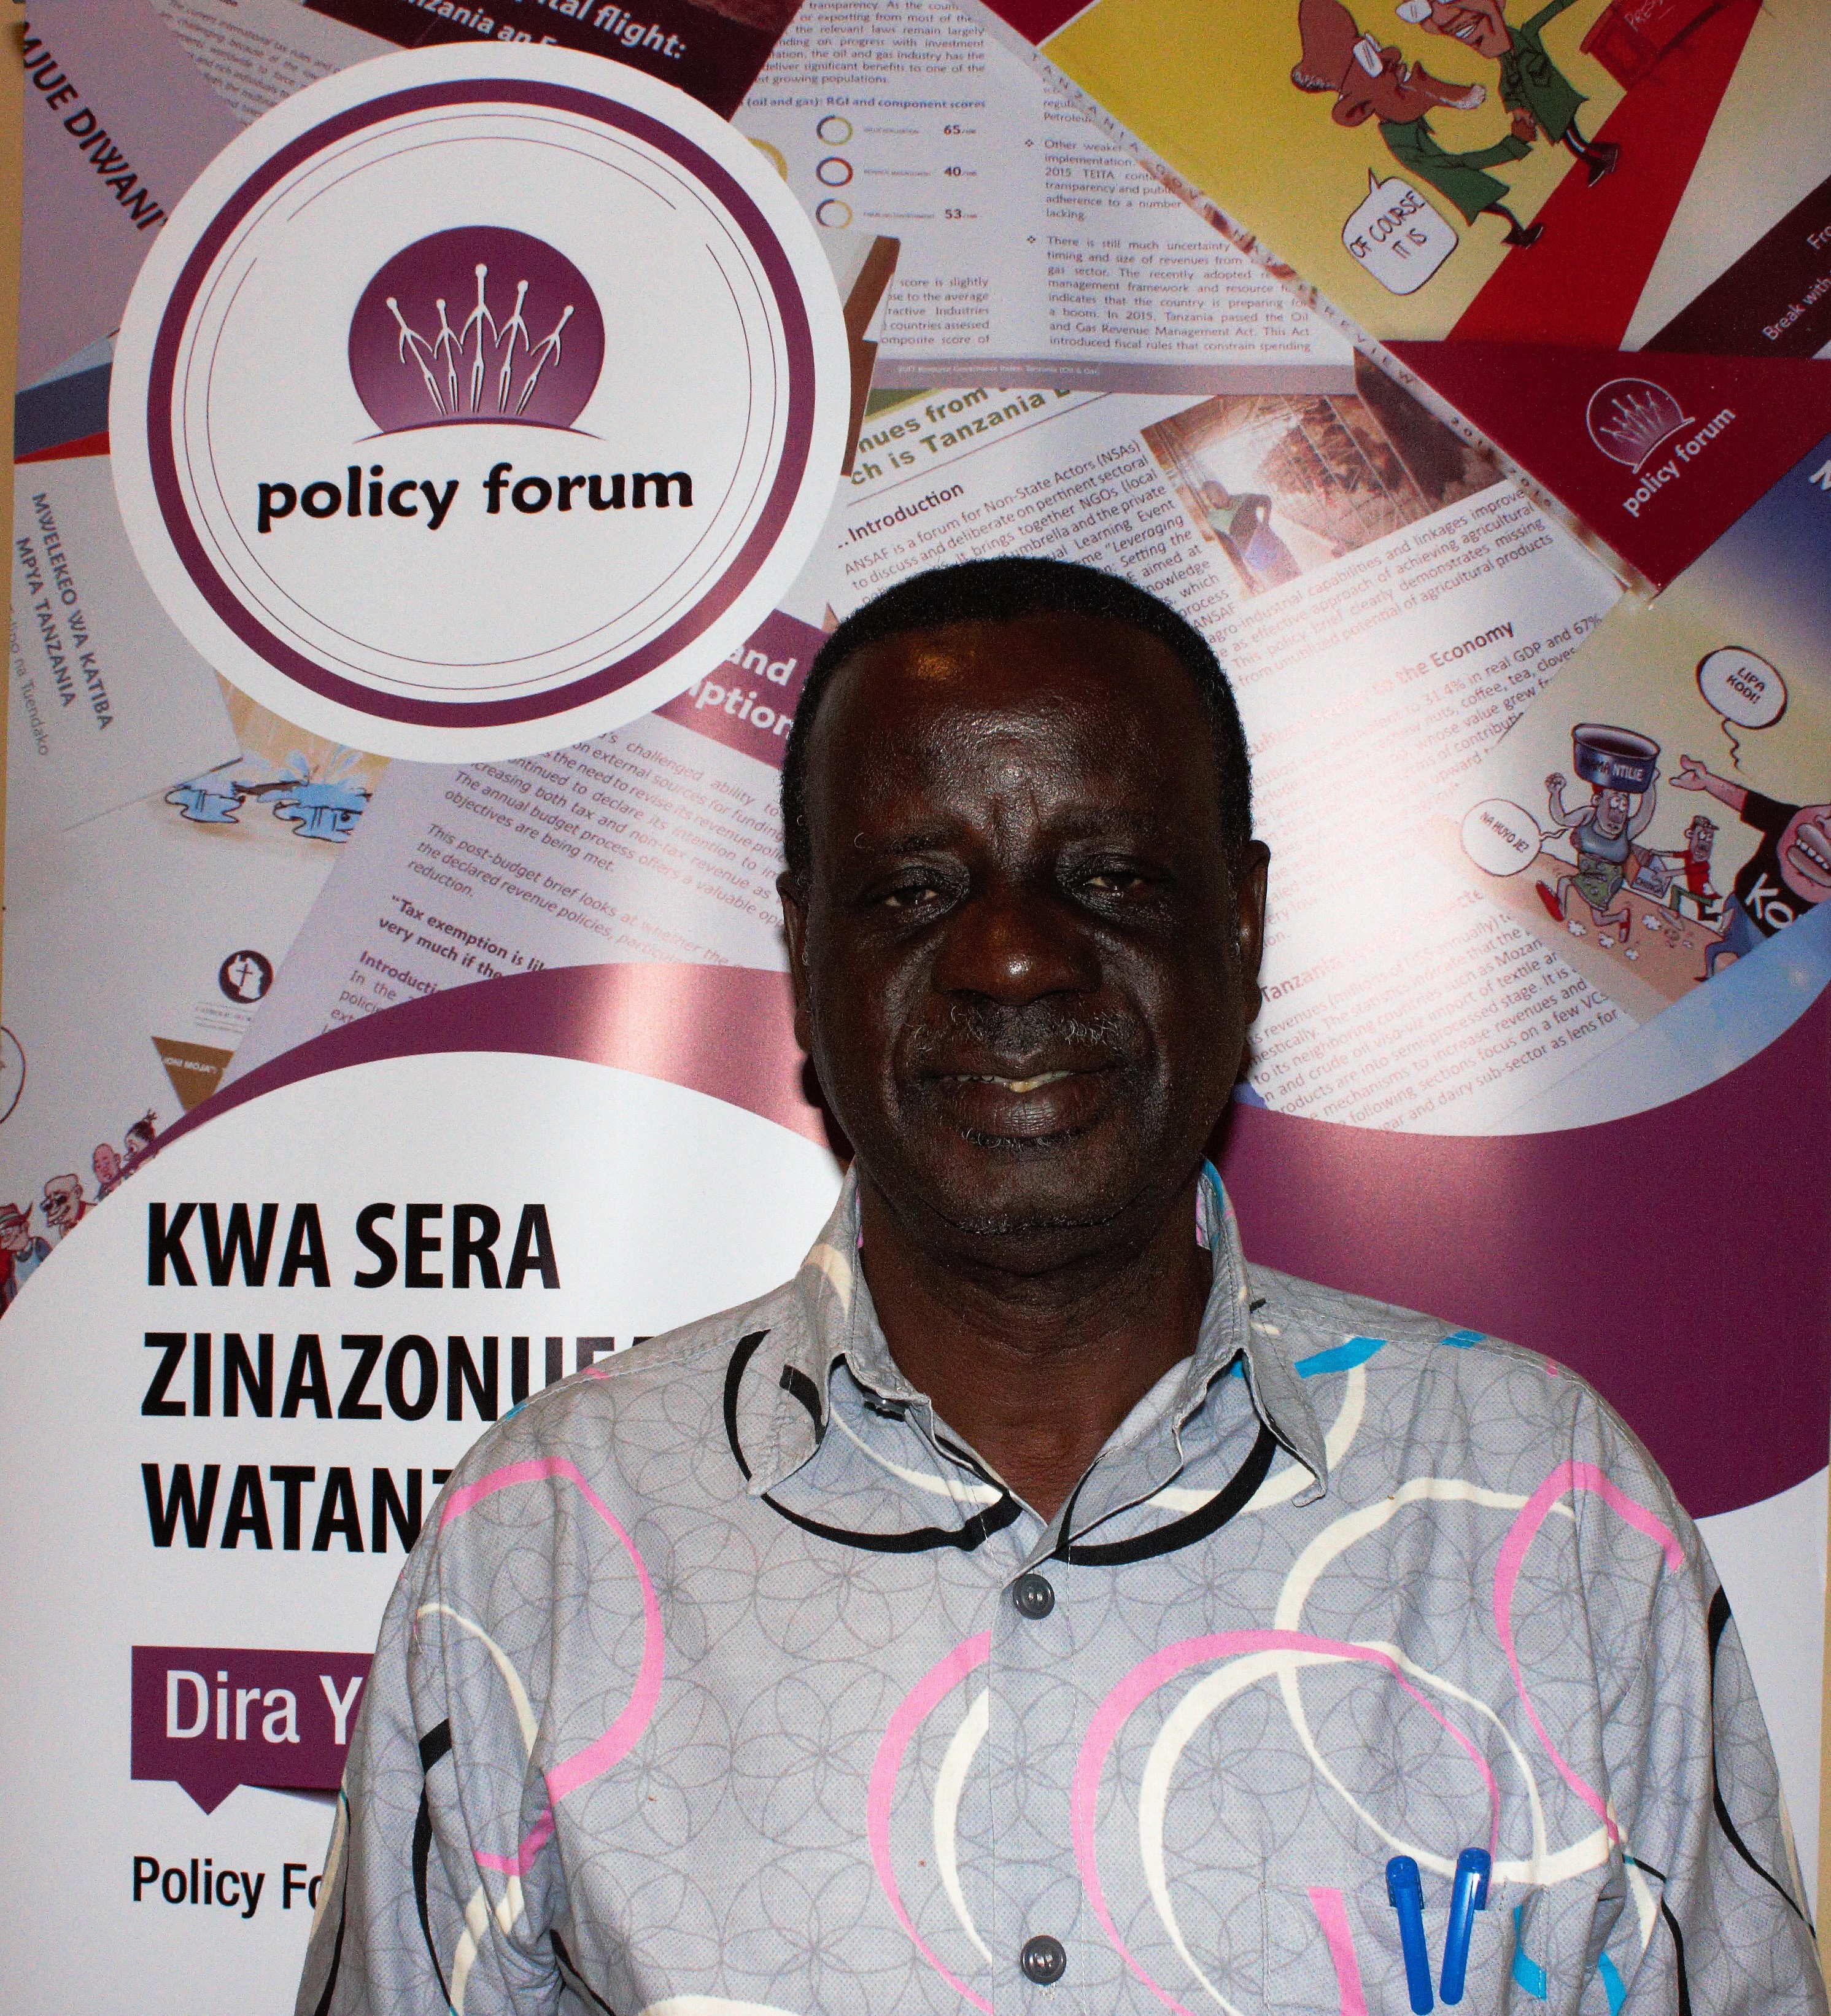 Policy Forum | Making policies work for people in Tanzania